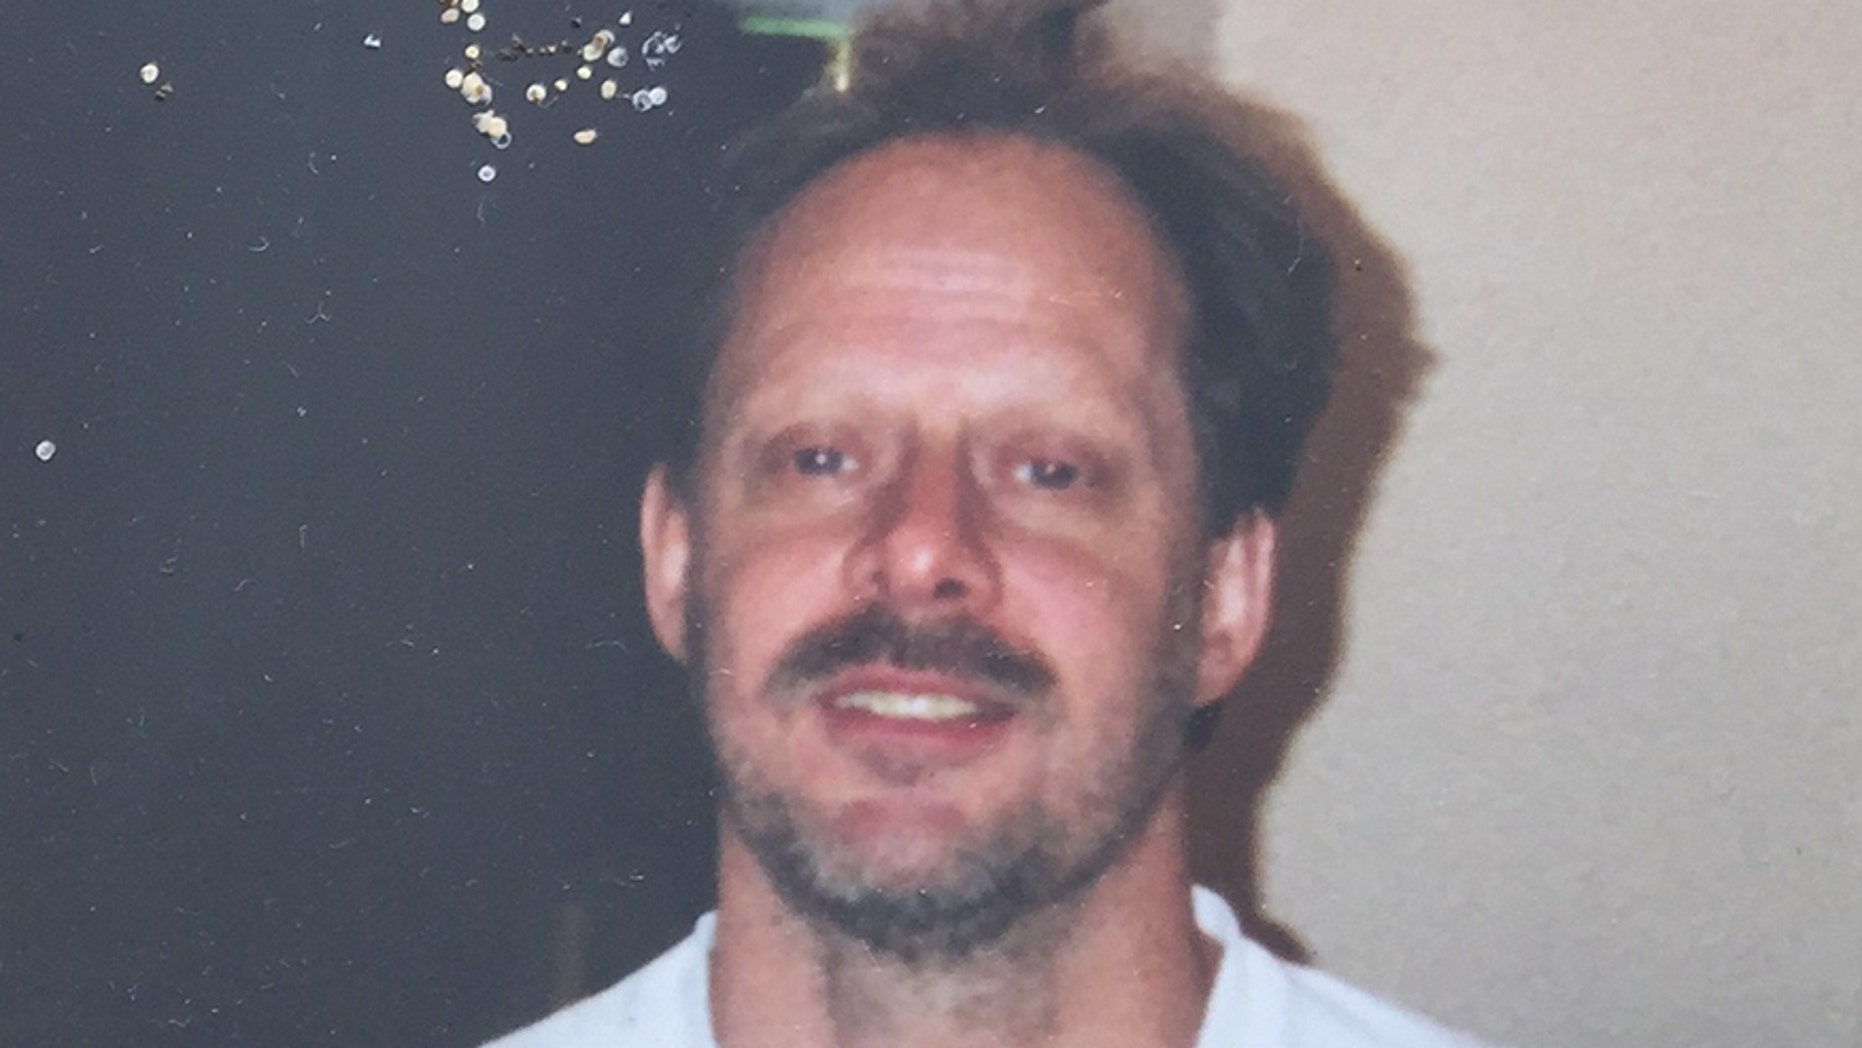 """Las Vegas shooter Stephen Paddock was called """"demented"""" and a """"very sick individual"""" by President Trump."""